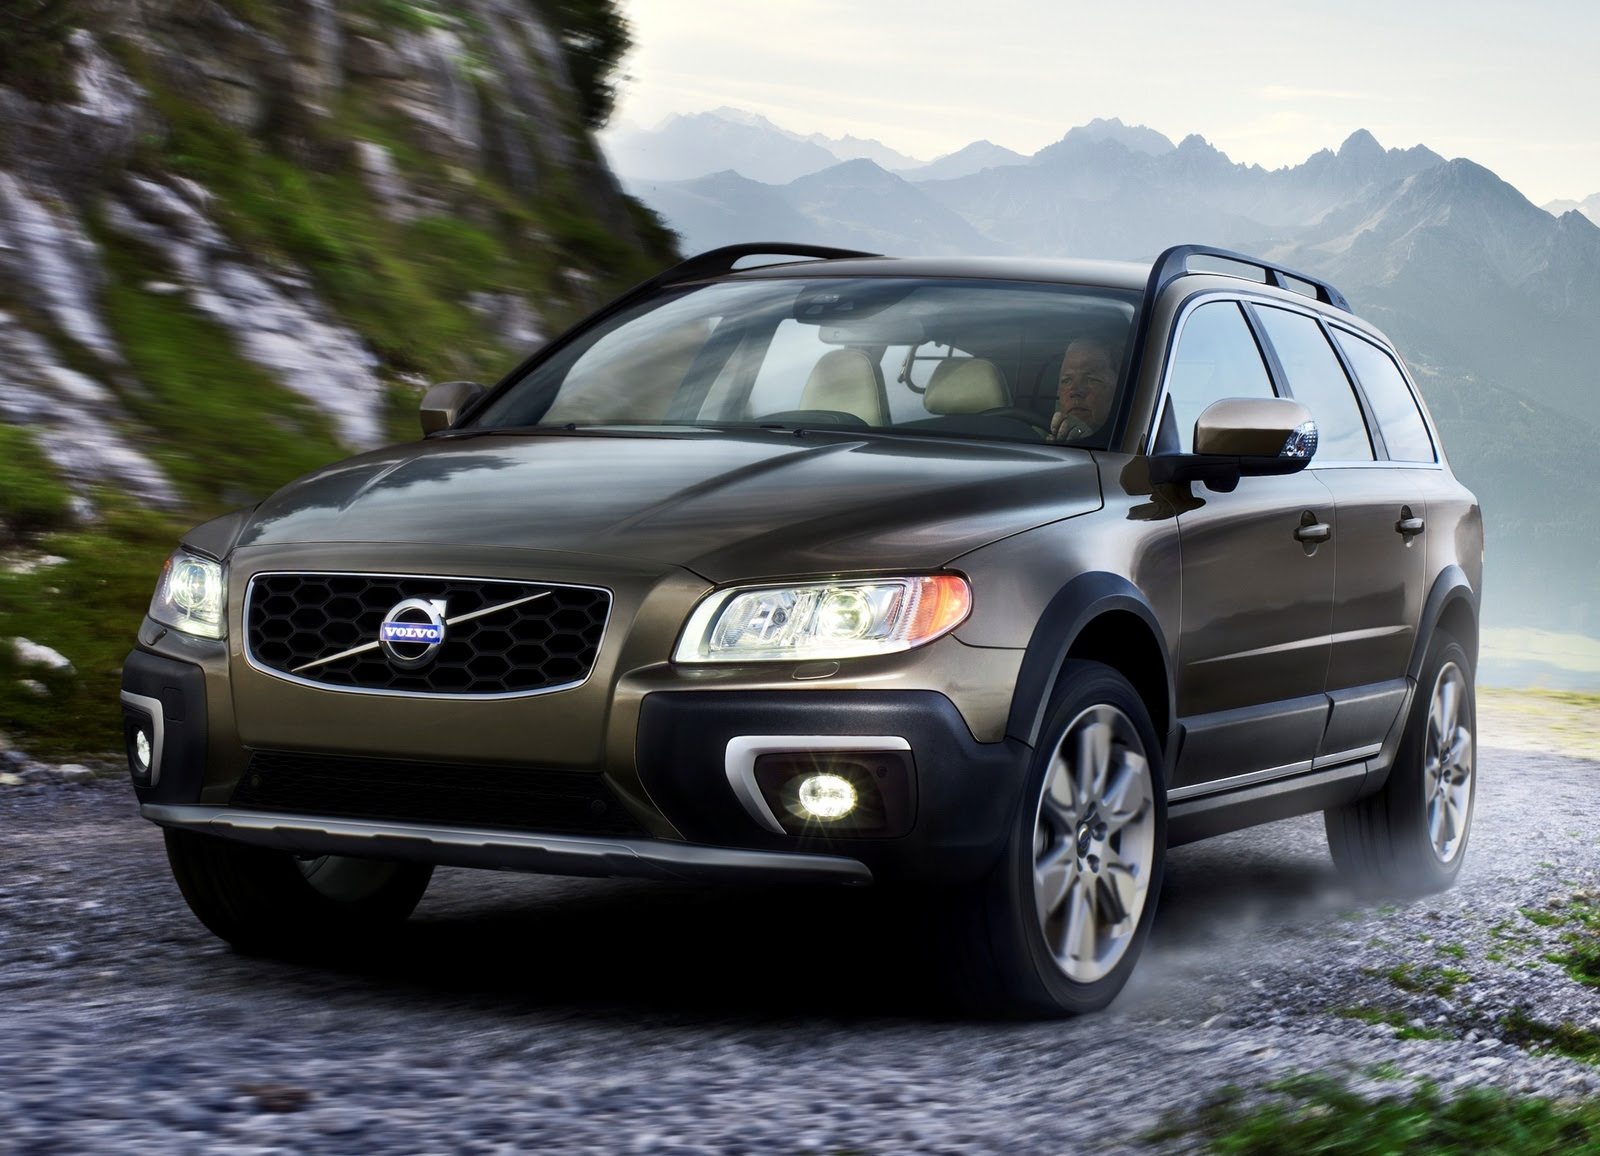 Home / Research / Volvo / XC70 / 2014